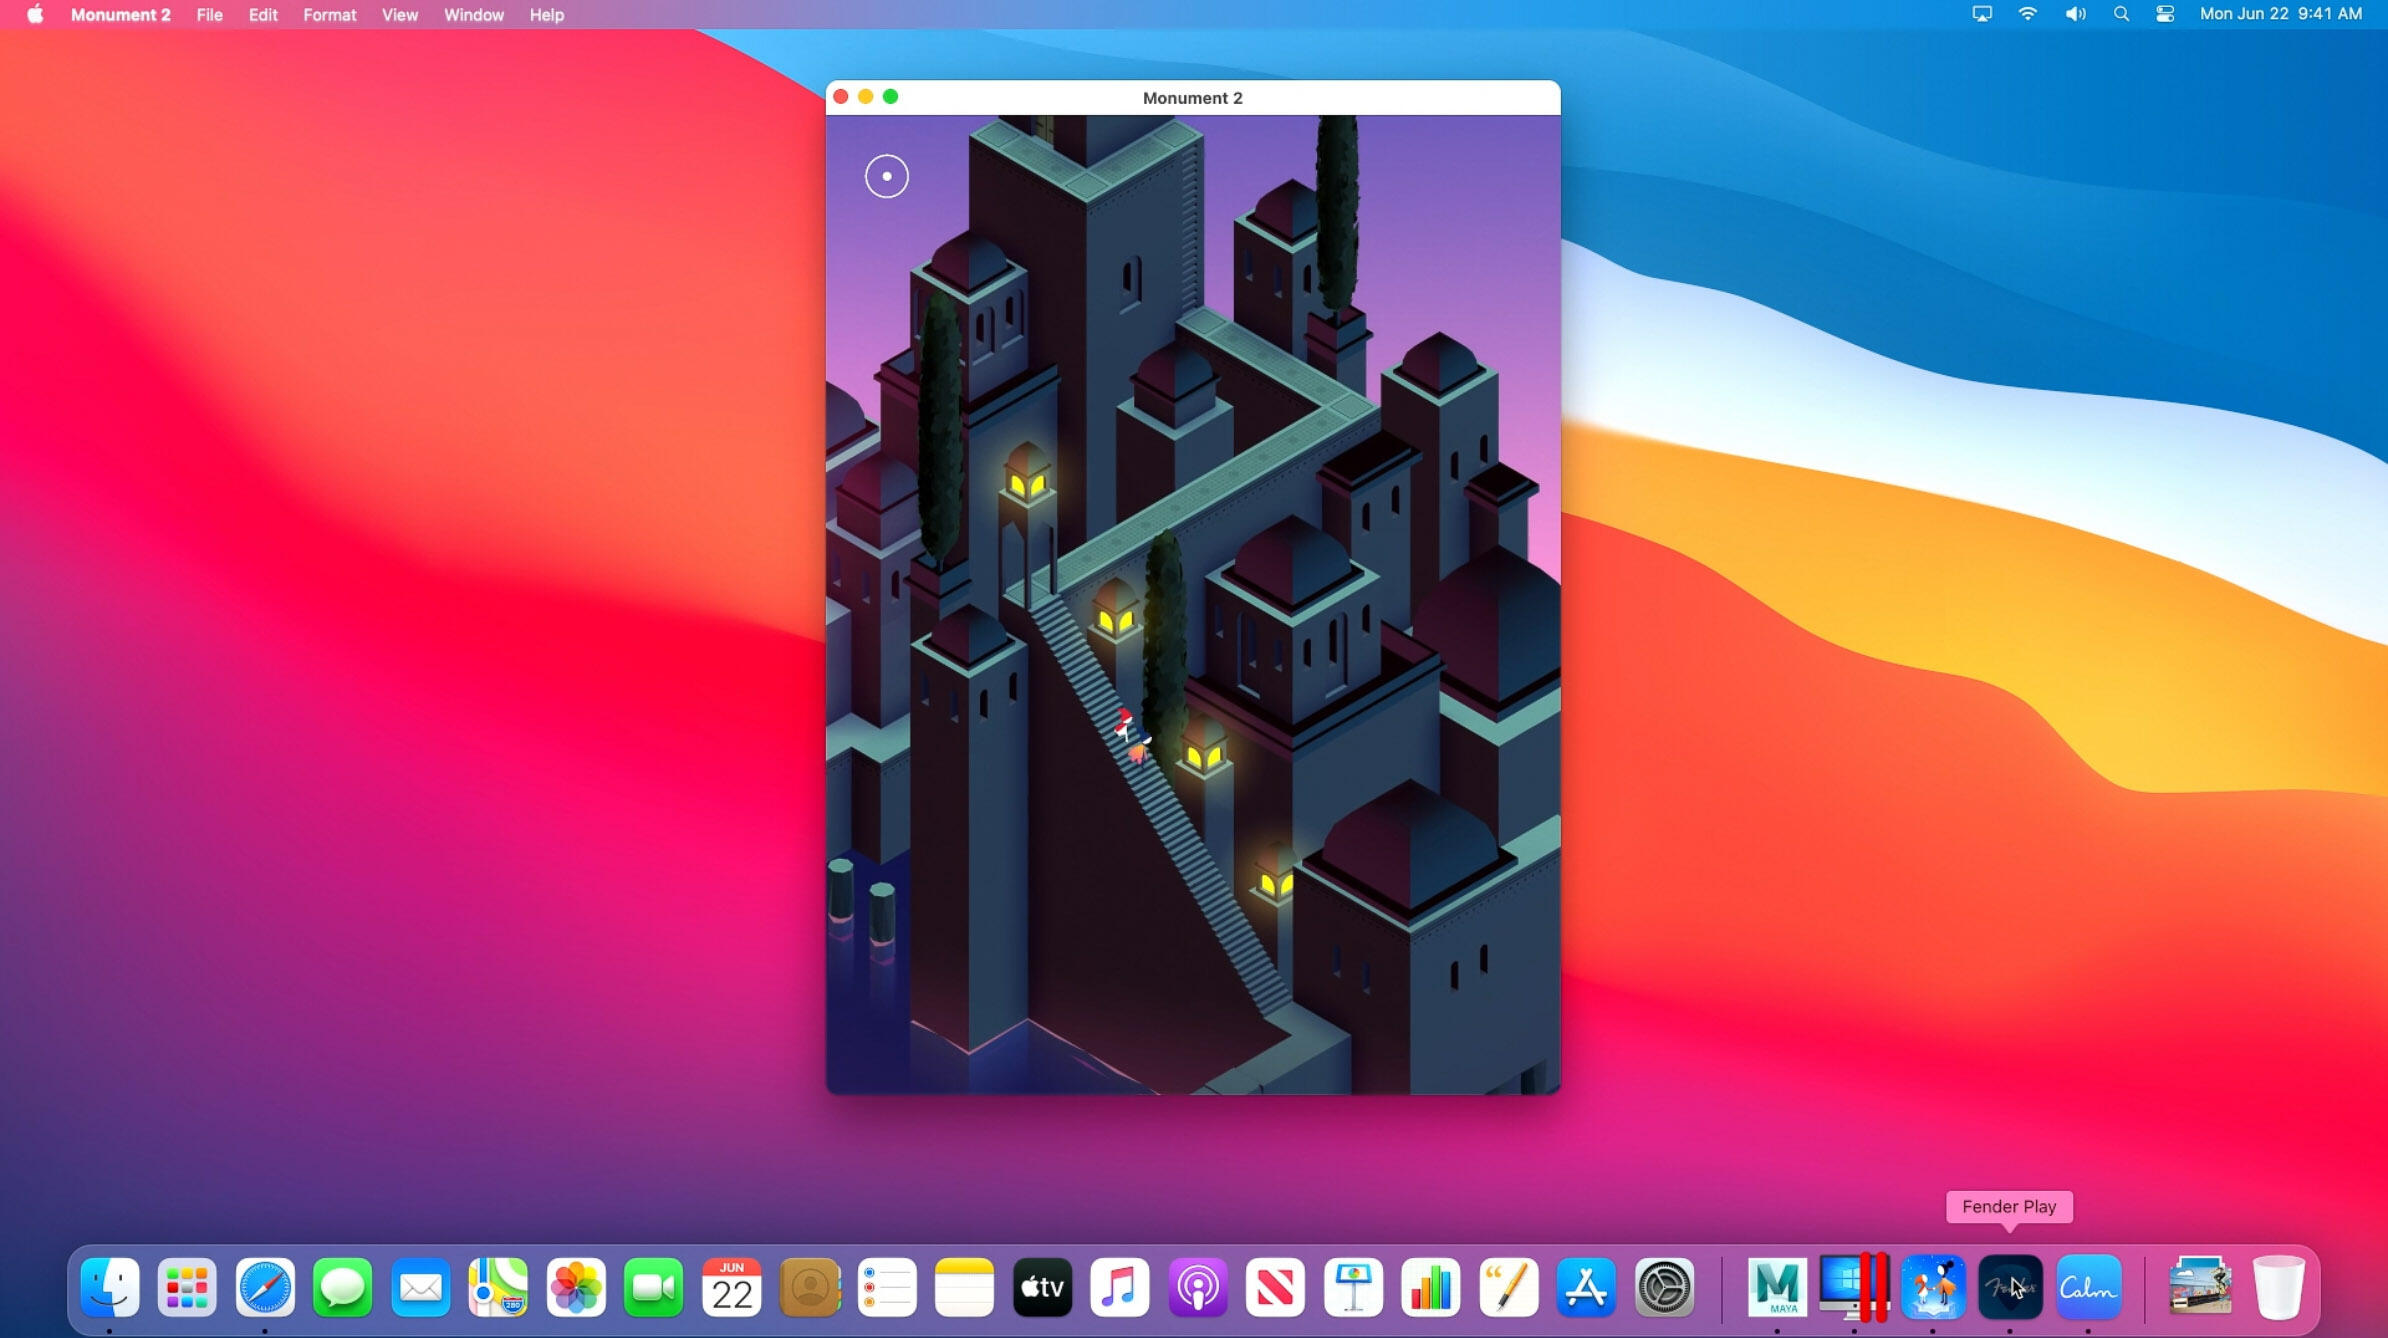 Apple's Arm-based Macs will be able to run software for iPads and iPhones, including the game Monument Valley.